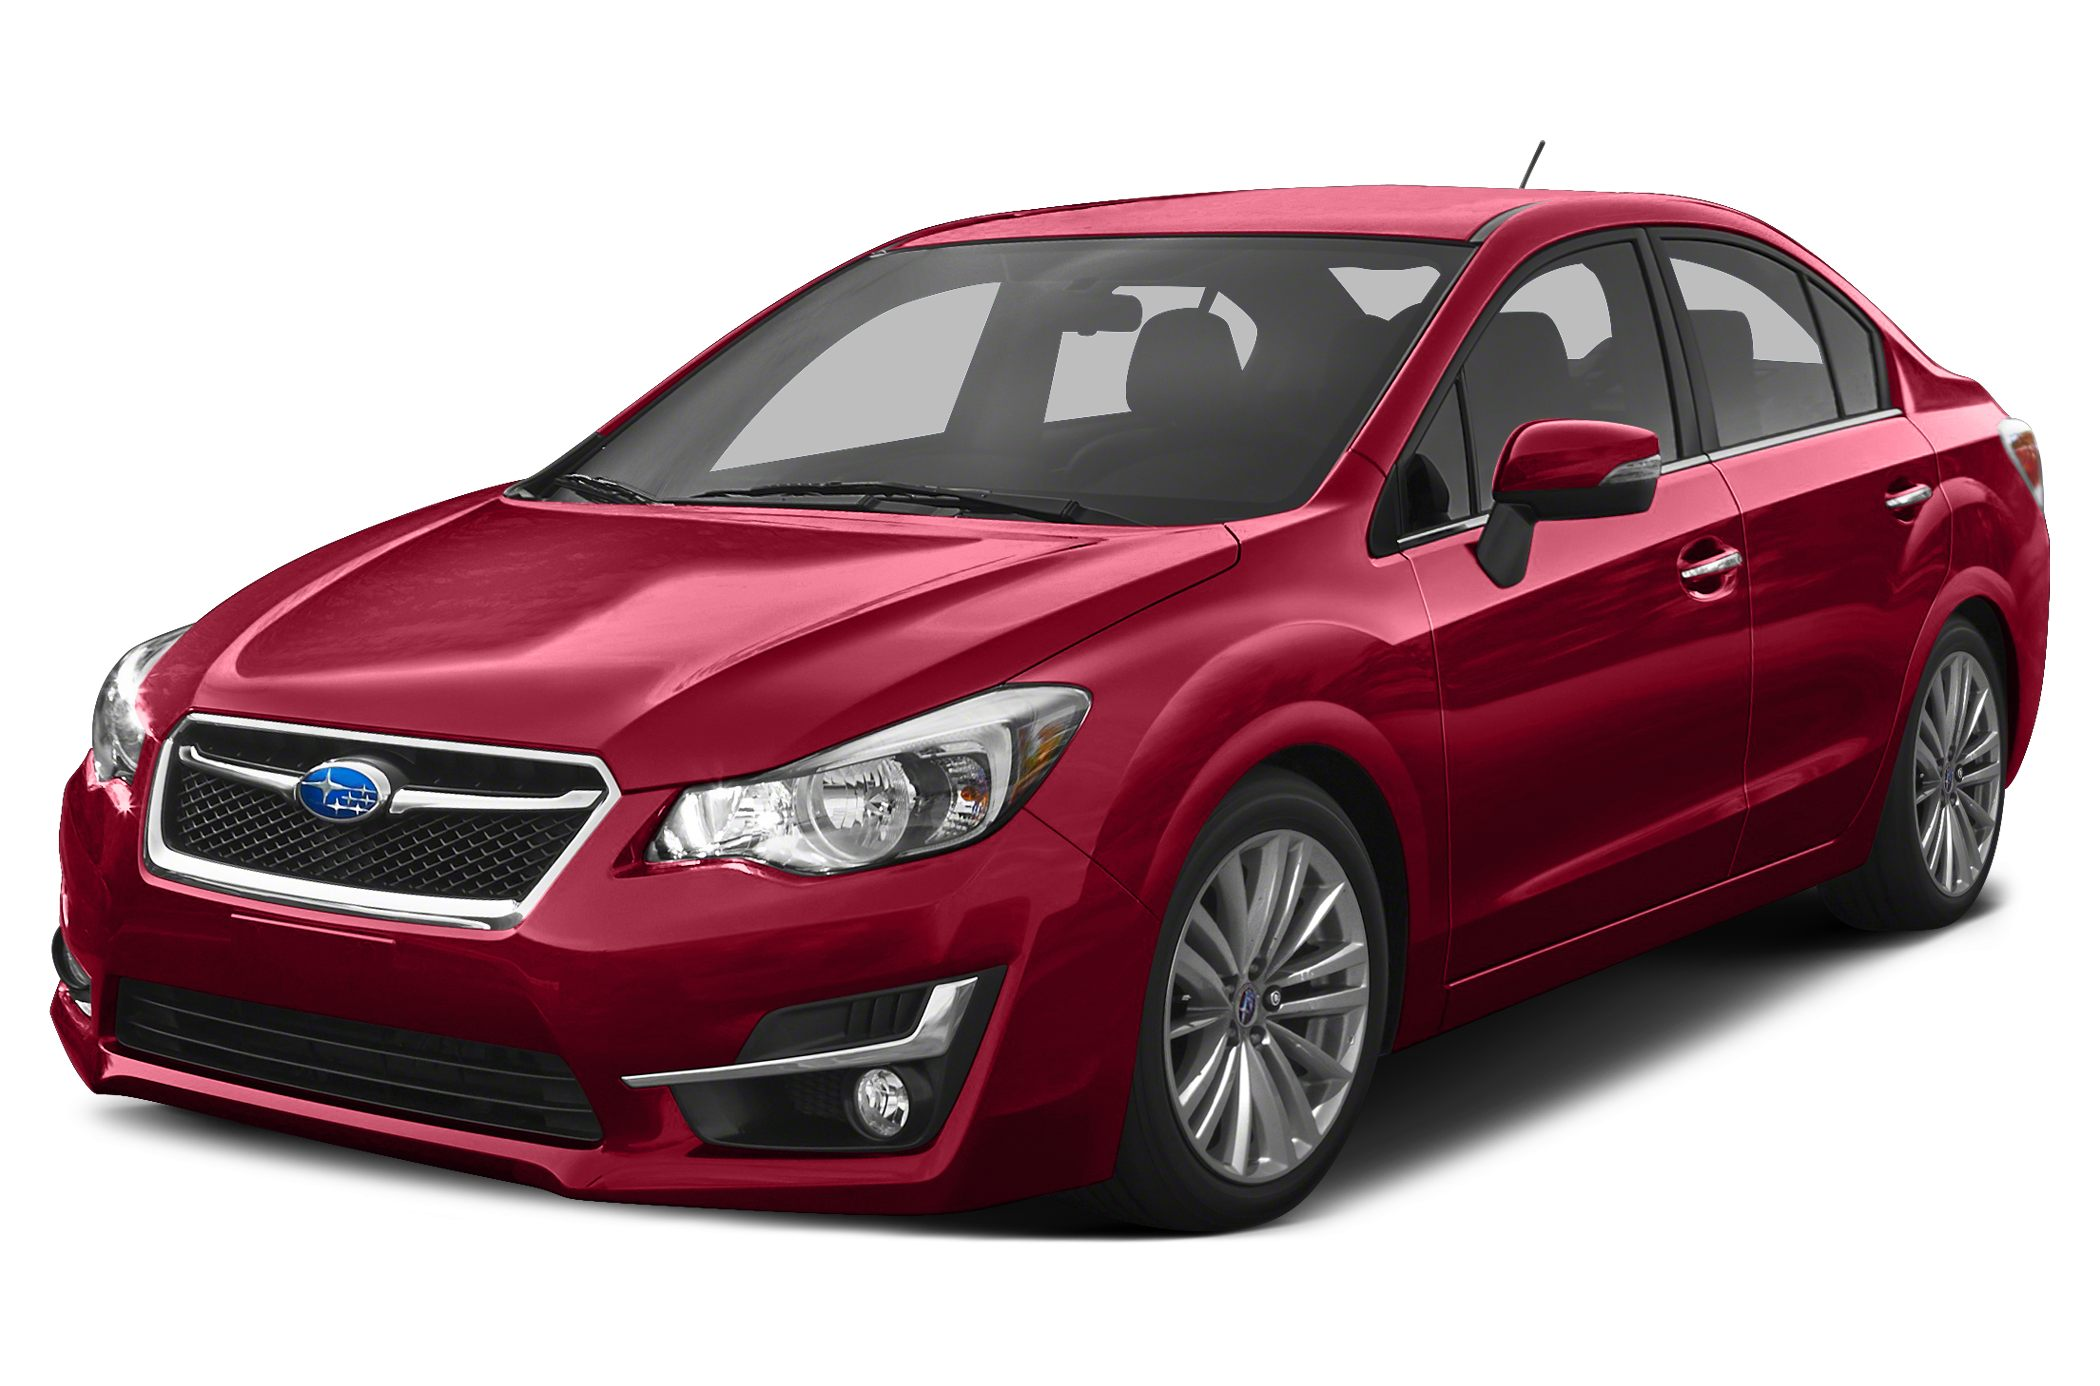 2015 Subaru Impreza 2.0i Premium Sedan for sale in Butte for $22,252 with 0 miles.